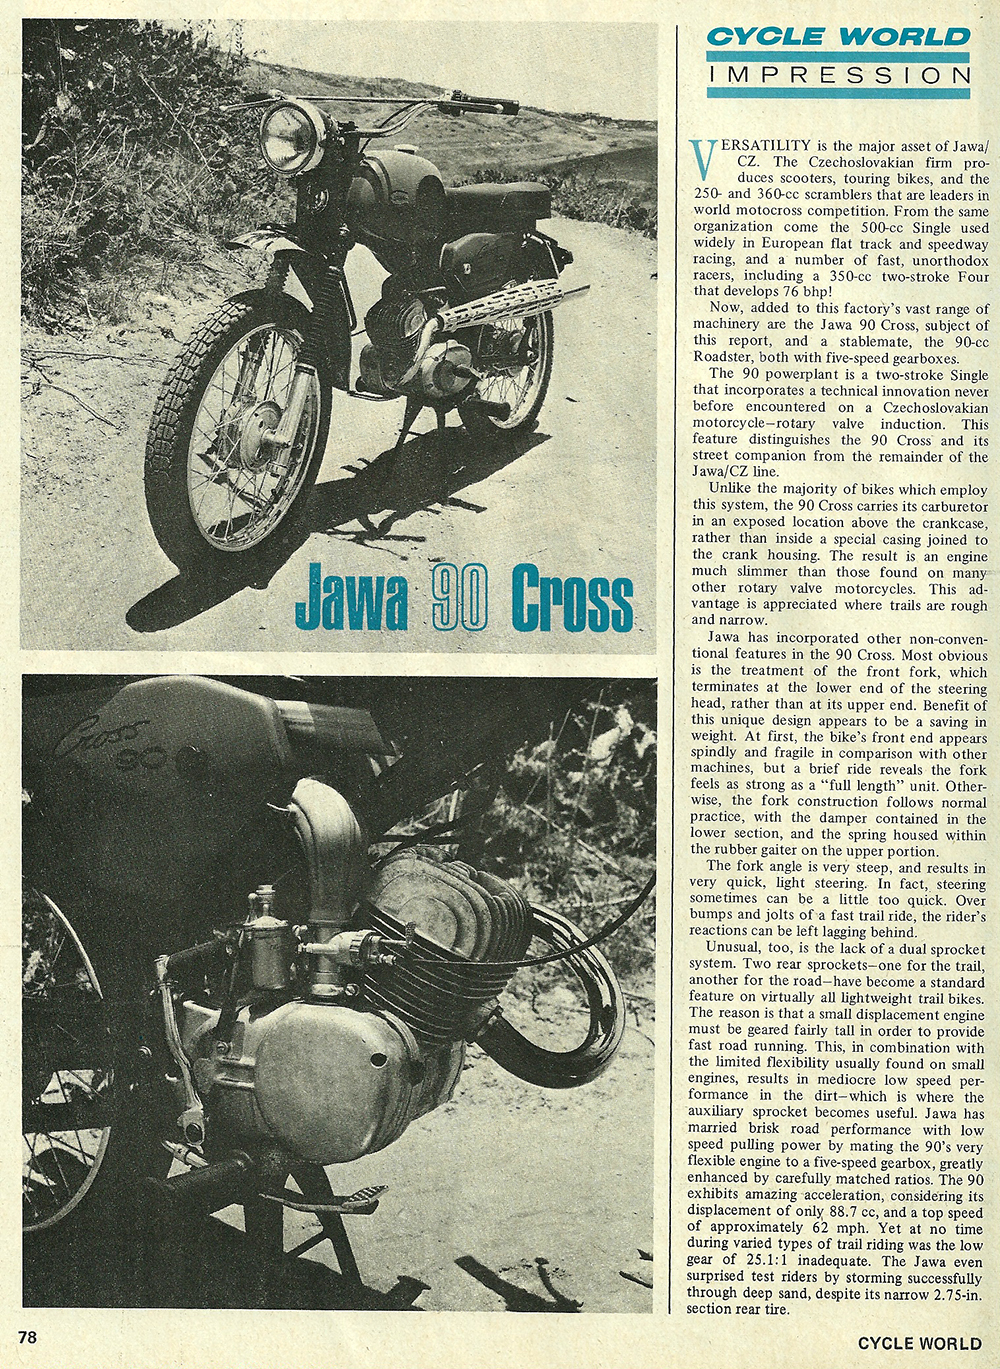 1968 Jawa 90 Cross road test 01.jpg